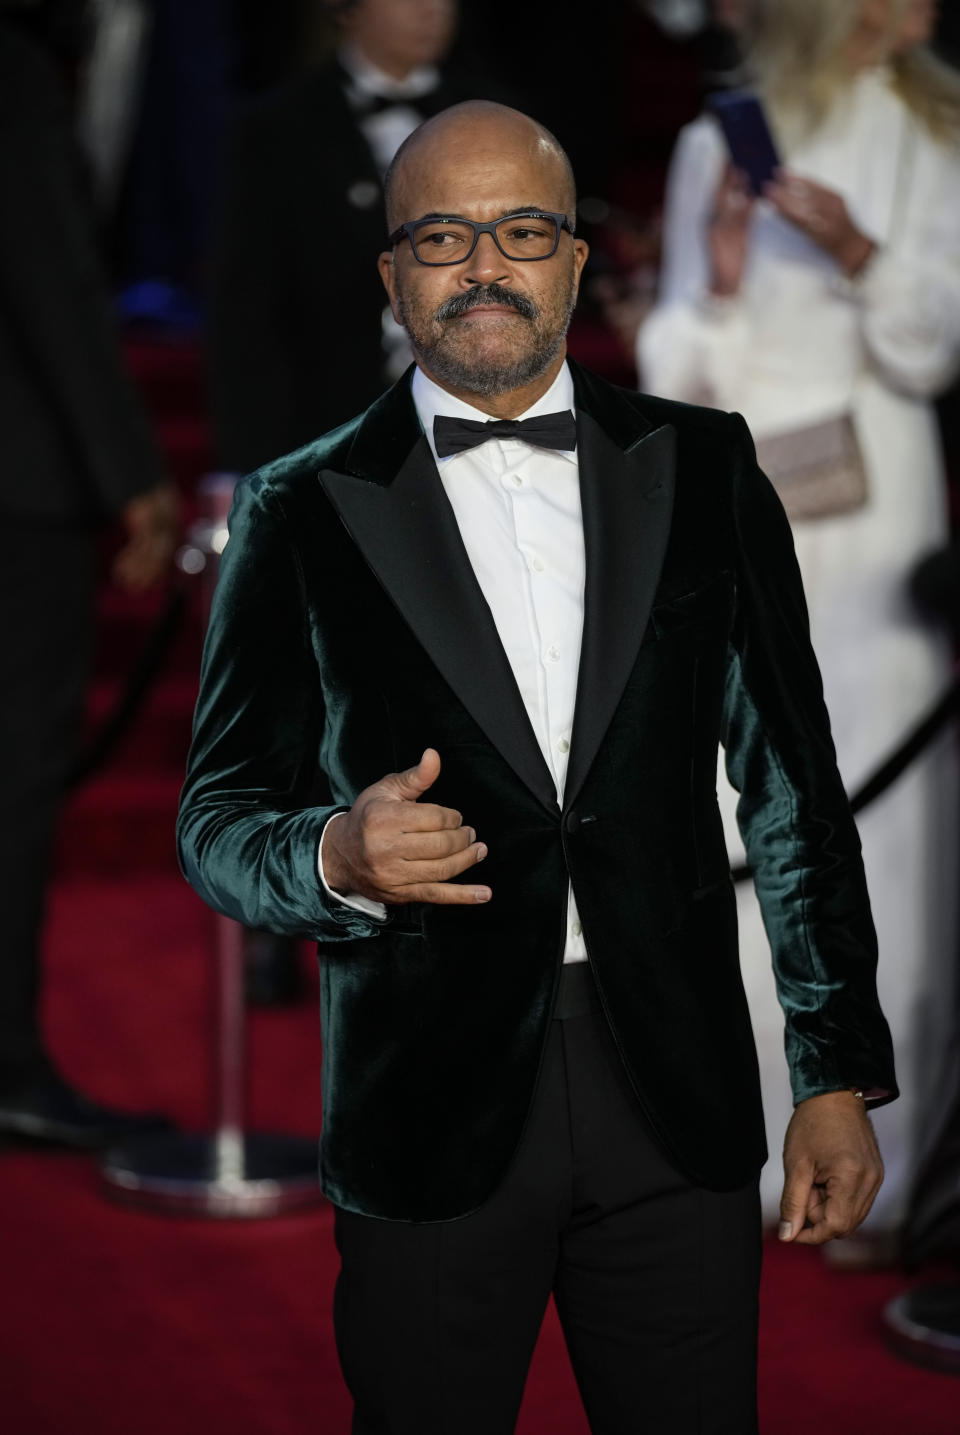 Jeffrey Wright poses for photographers upon arrival for the World premiere of the new film from the James Bond franchise 'No Time To Die', in London Tuesday, Sept. 28, 2021. (AP Photo/Matt Dunham)